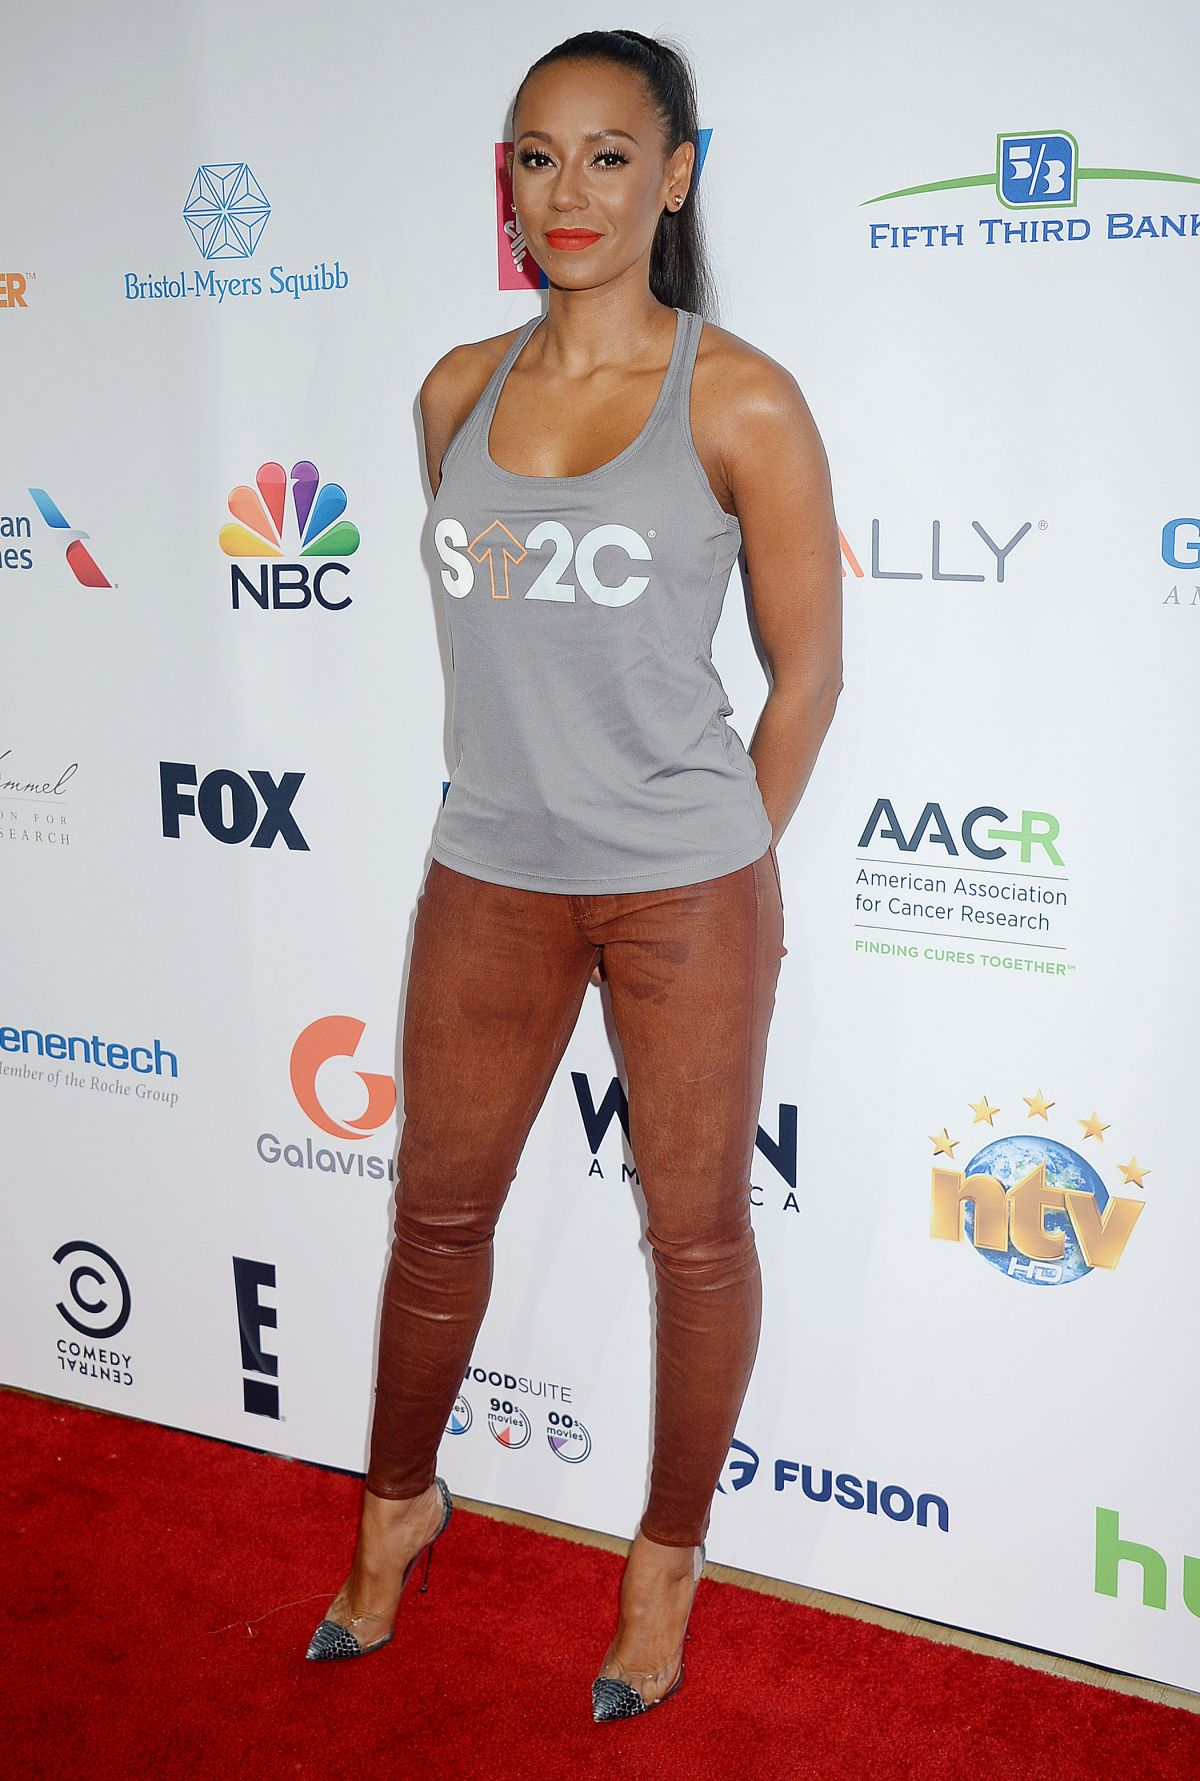 MELANIE BROWN at 5th Biennial Stand Up To Cancer in Los Angeles 09/09/2016